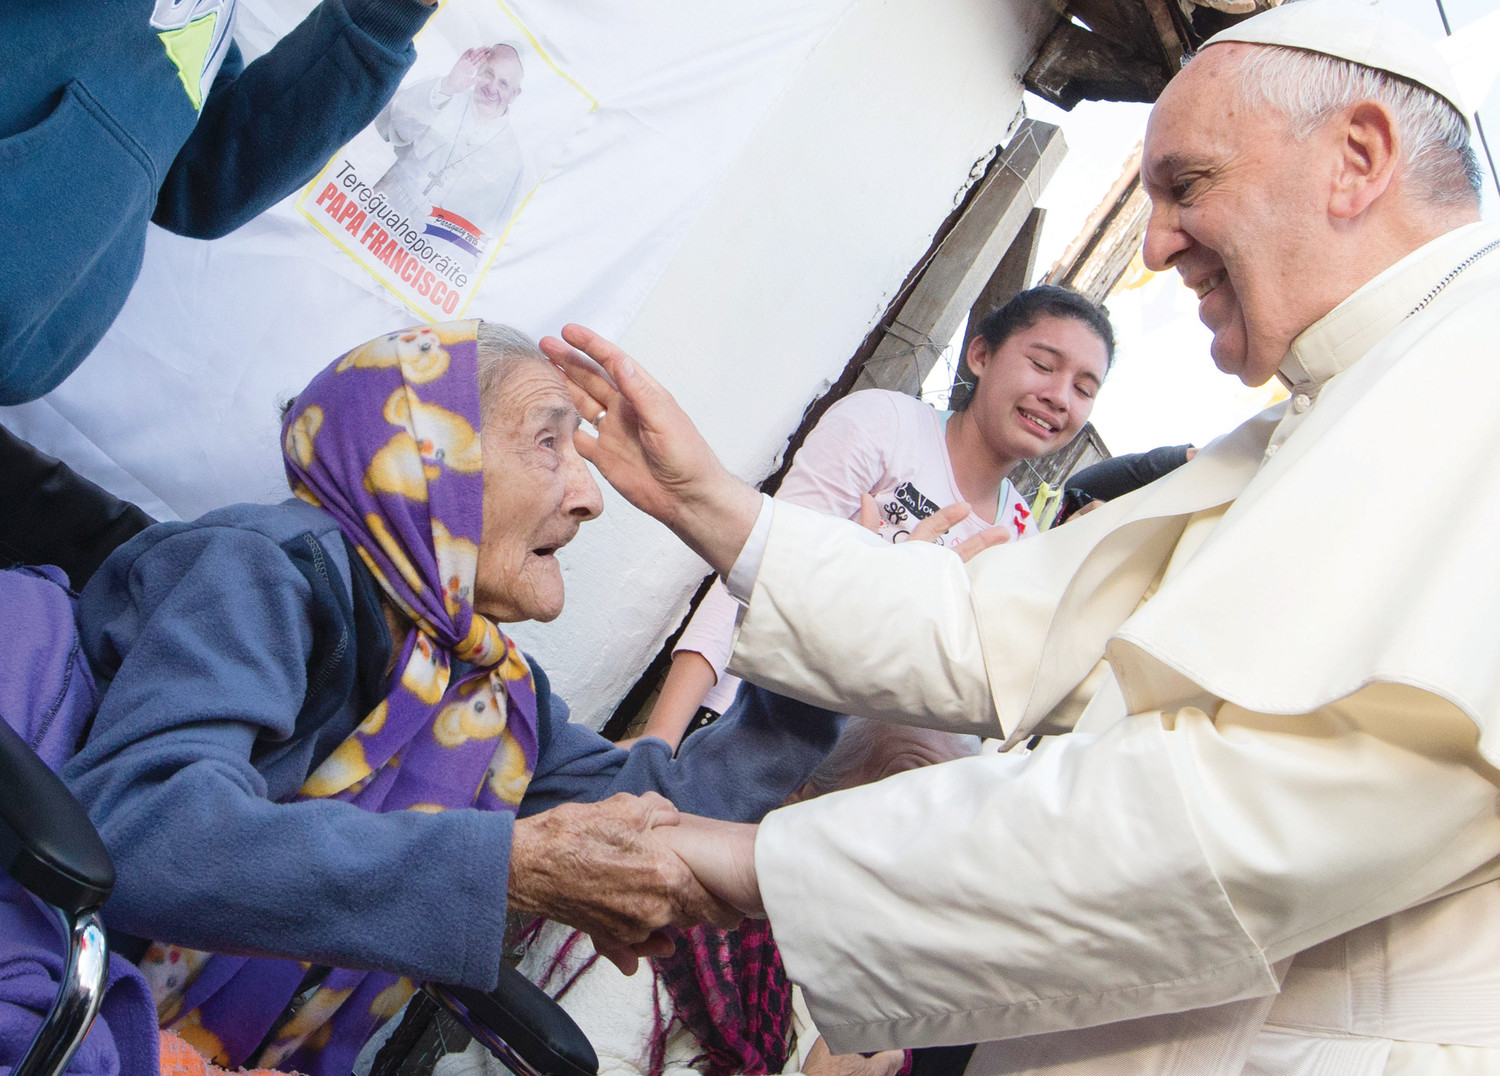 Pope Francis greets an elderly woman as he meets with people of the Banado Norte neighborhood in Asuncion, Paraguay, in this July 12, 2015, file photo. The pope has shown special concern for the aged, the sick and those with disabilities.